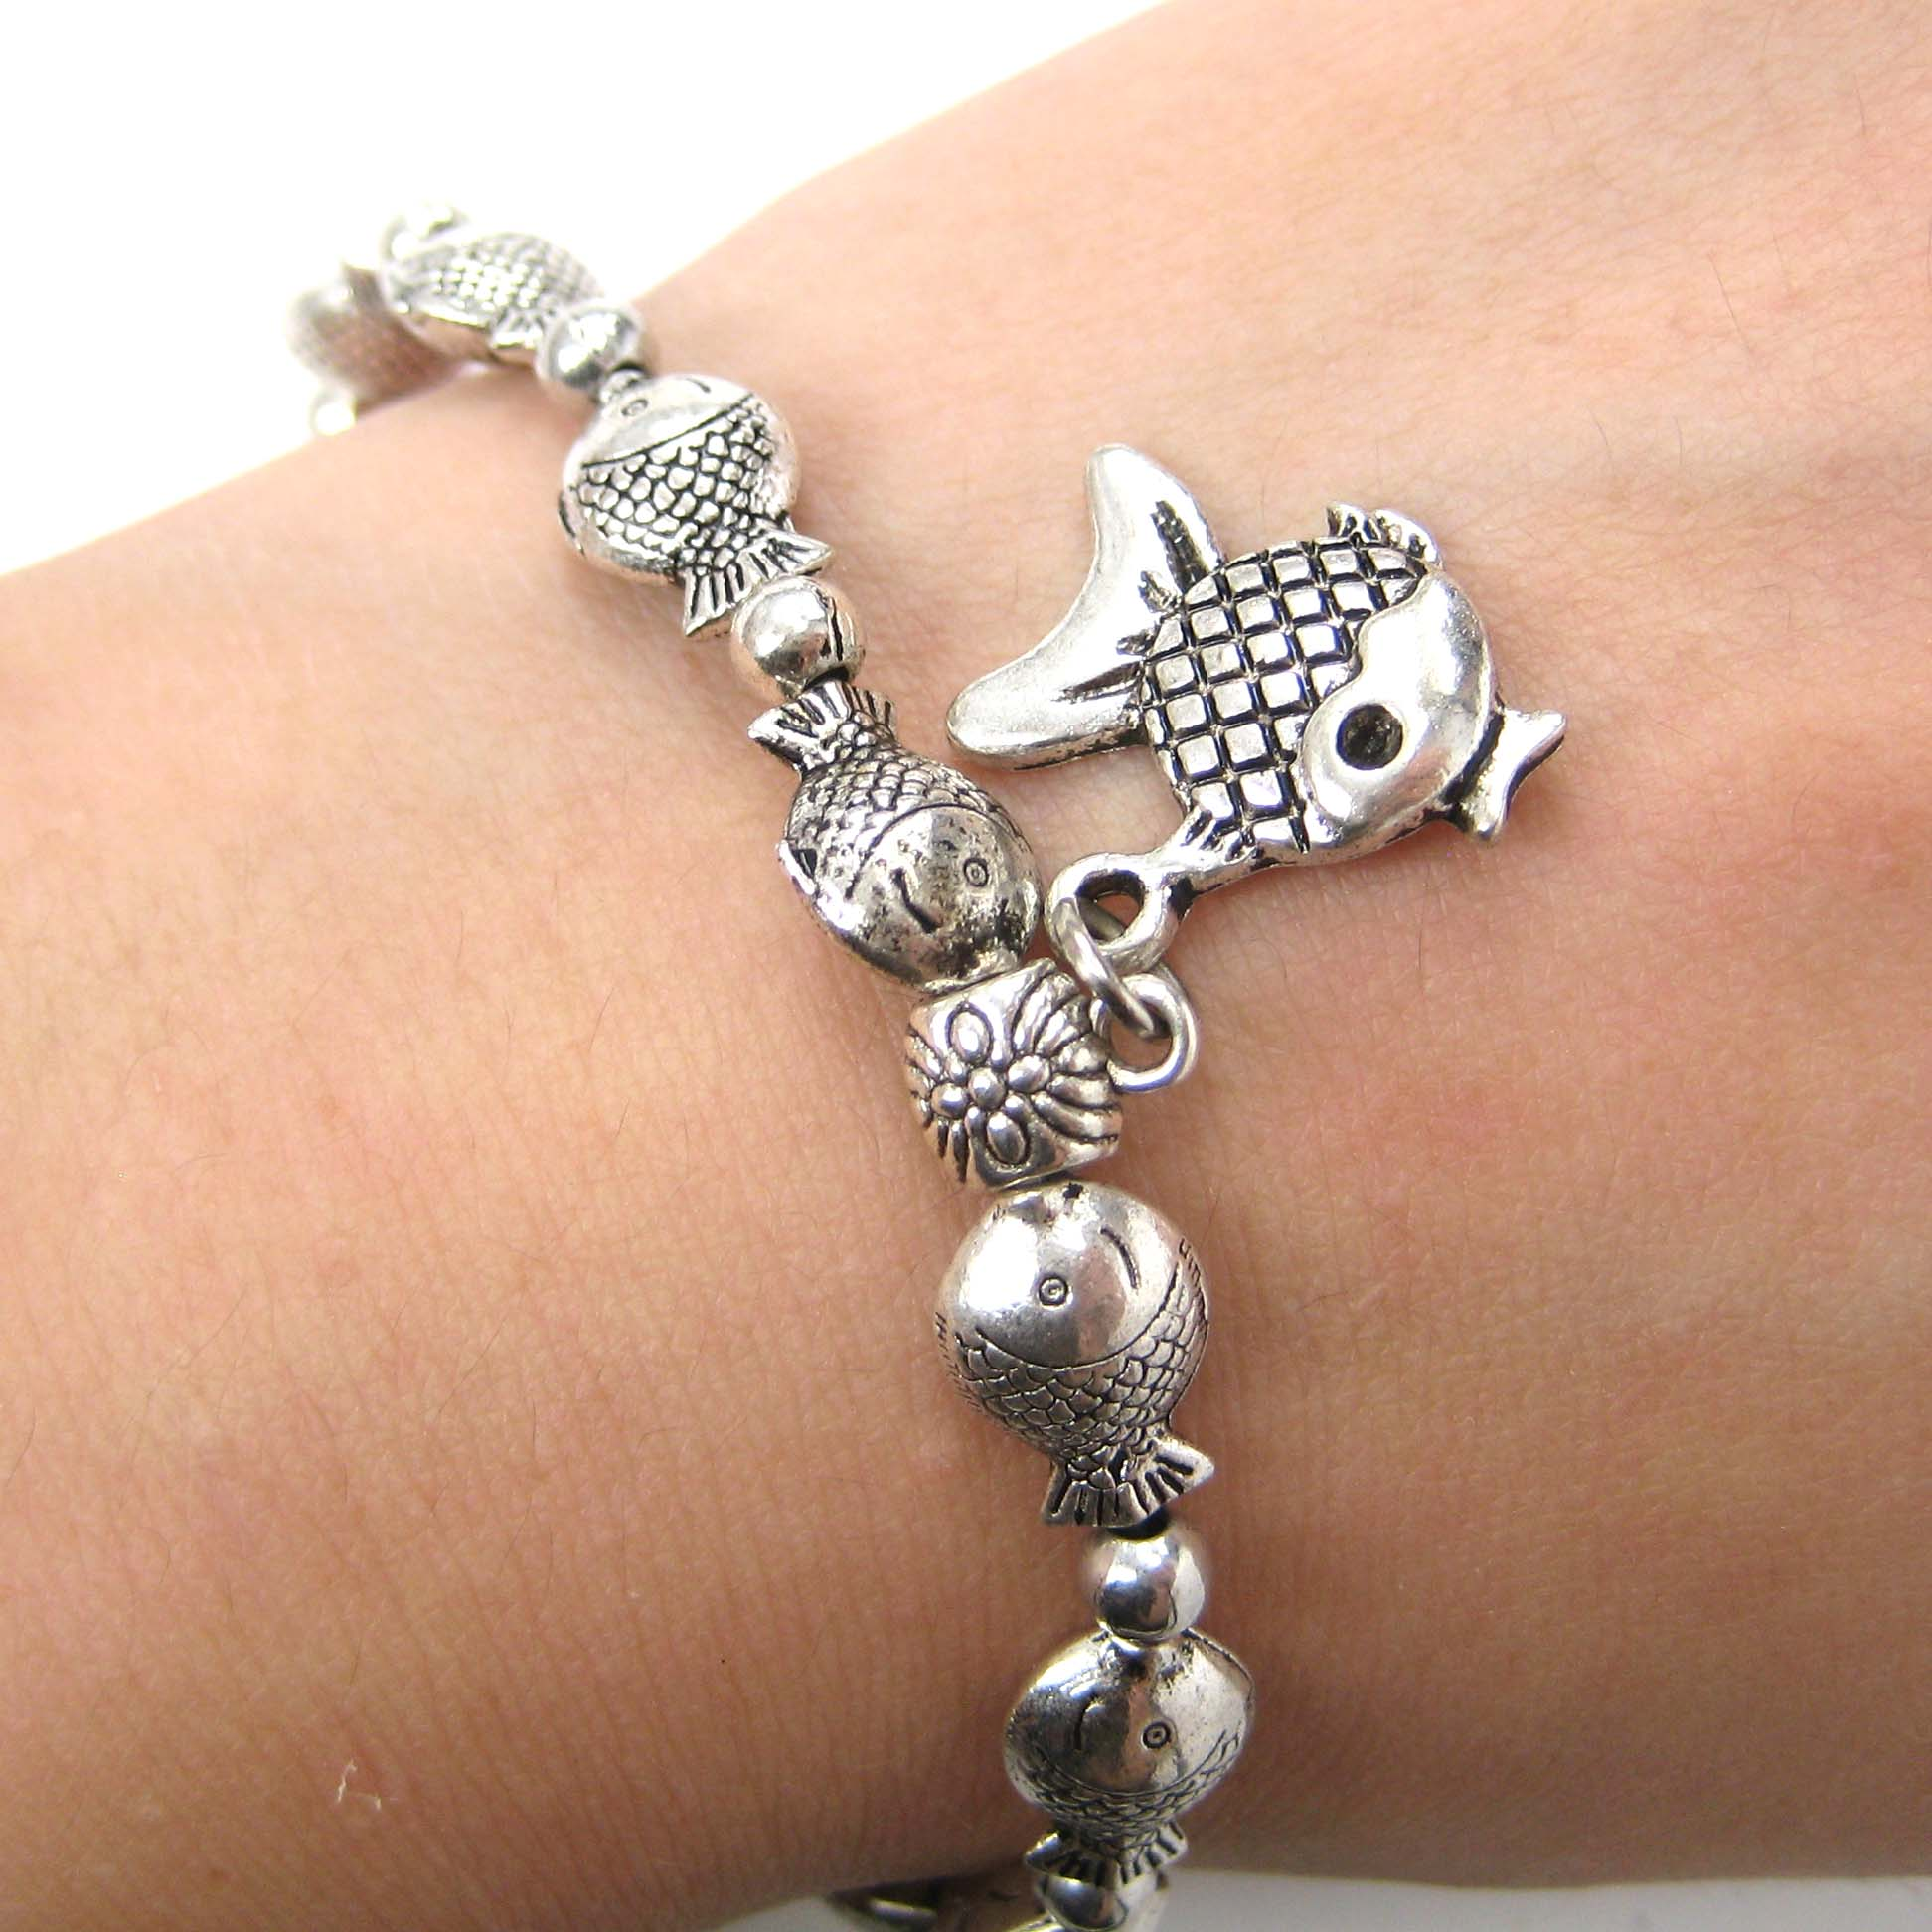 fish-parade-sea-animal-stretchy-bracelet-in-silver